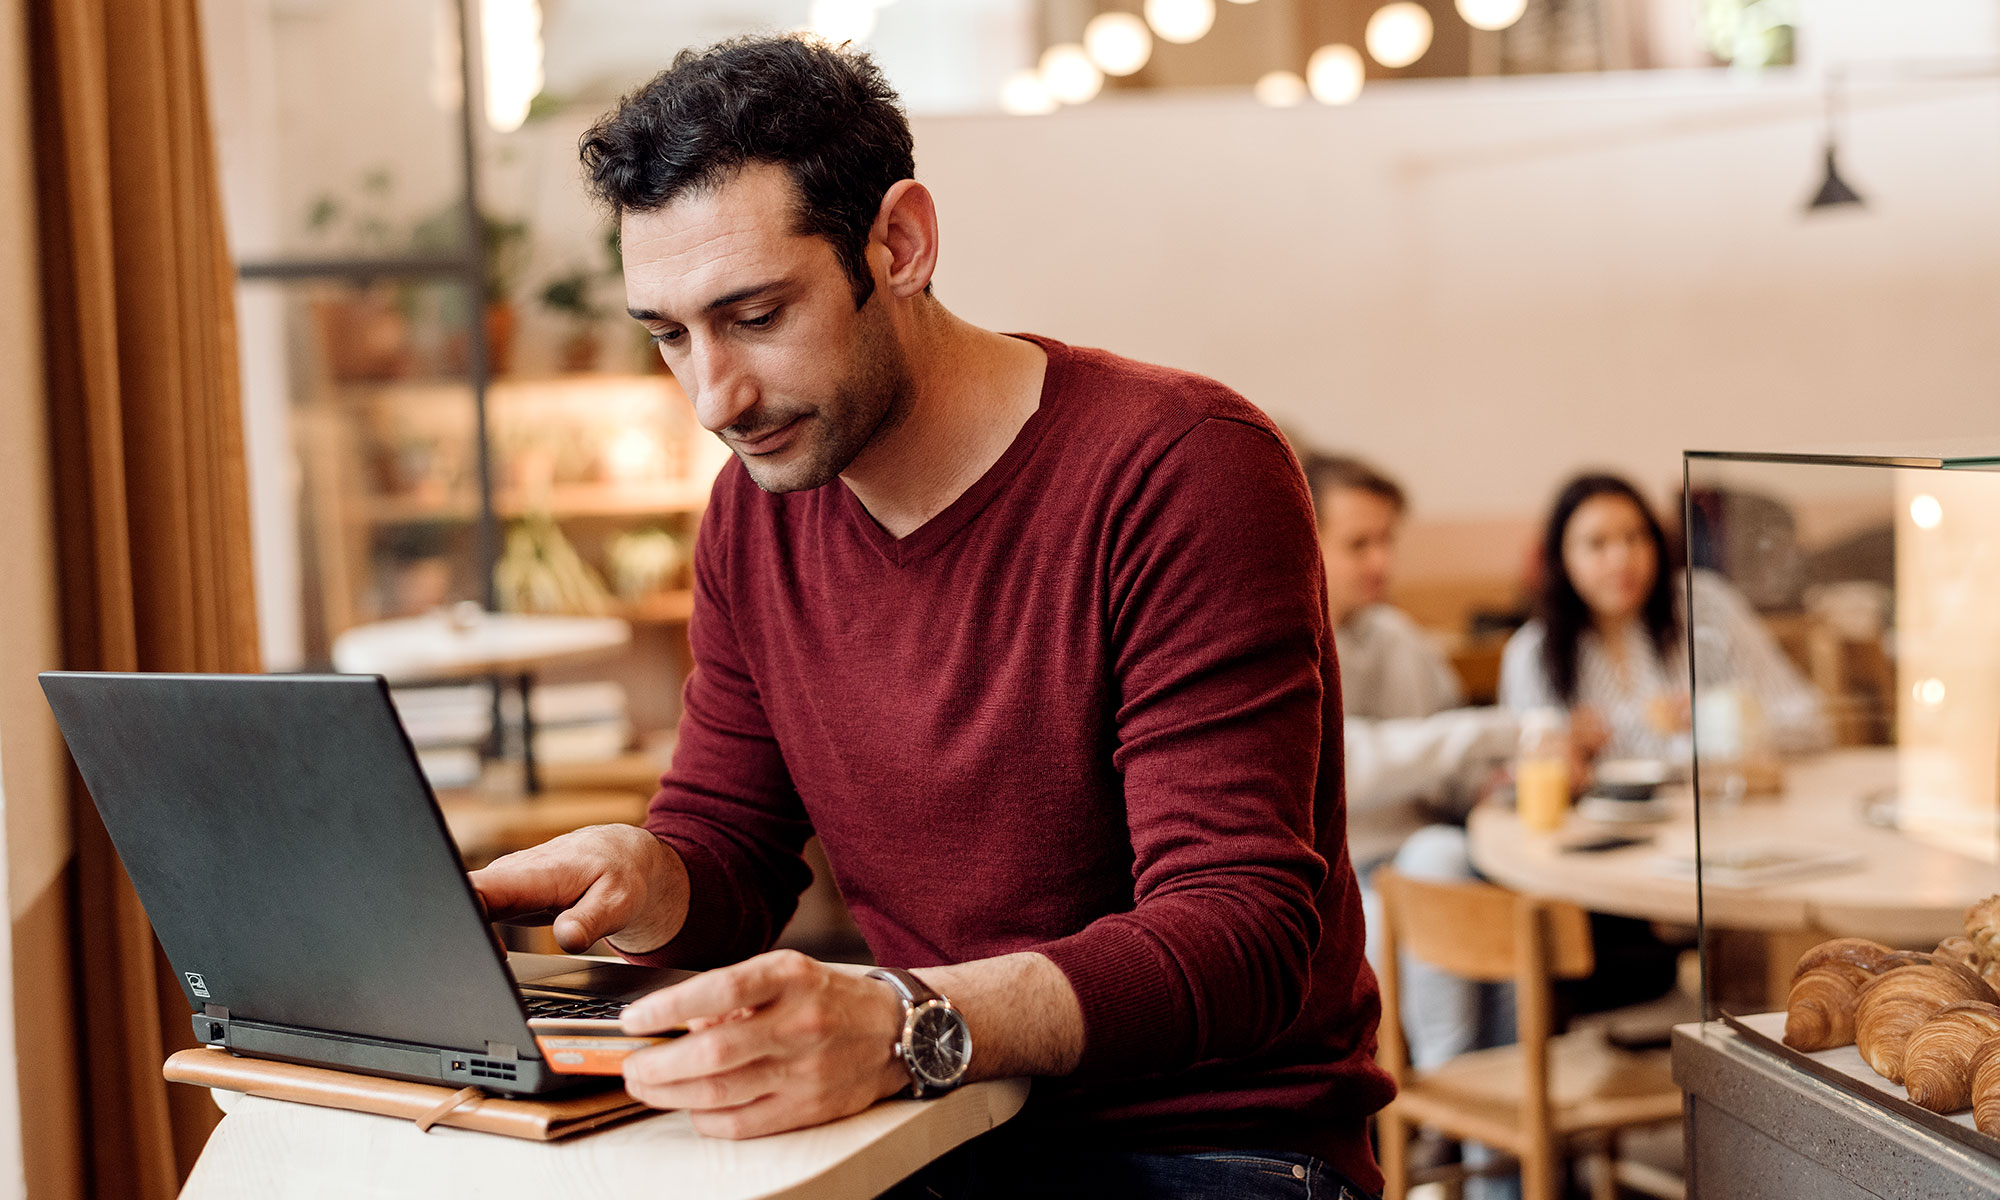 Man working on his laptop in a café.